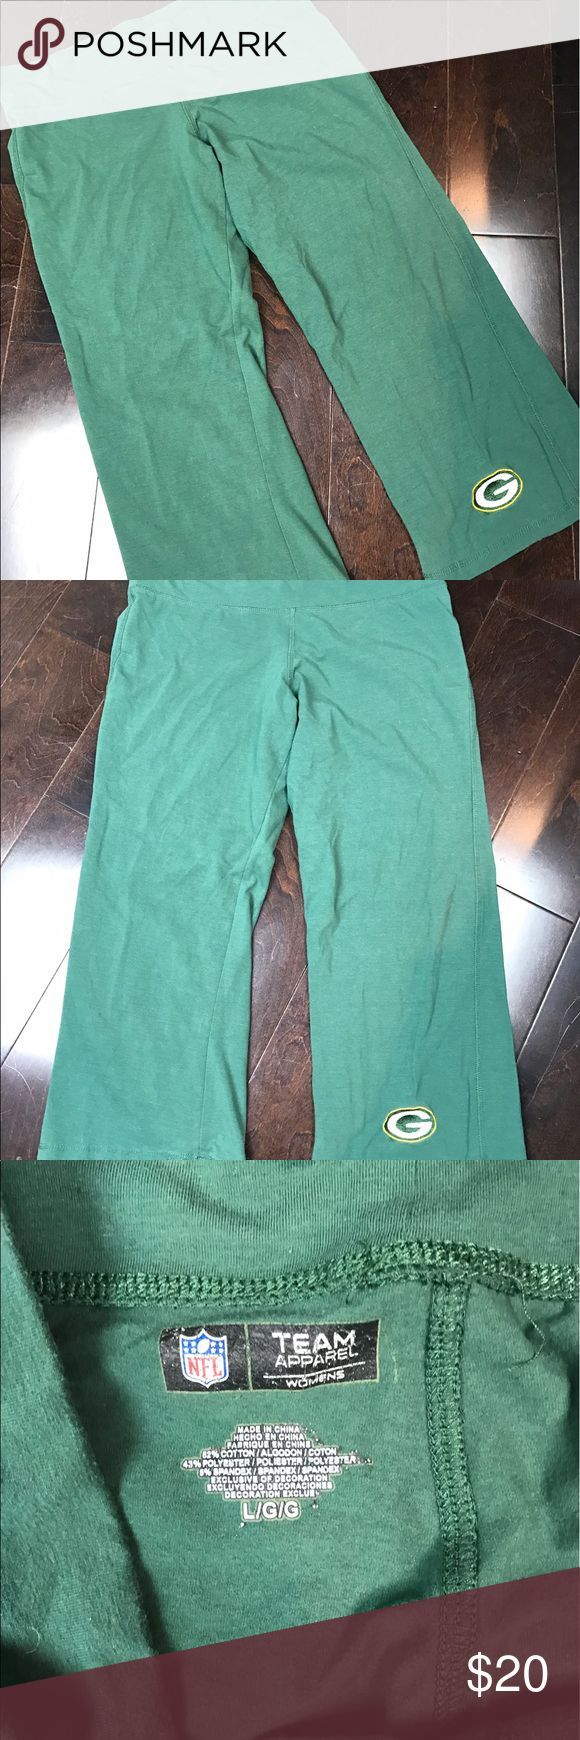 """Green Bay Packers Green Capris Size Large Stylish, Trendy, In fashion!  Make this item part of your Packers wardrobe today!  So comfy and cozy.  Wear them out and about or at home.  🏈 Size  - Large 🏈 Color - Green w/ Green Bay Logo  Please """"comment"""" below with questions on this listing or other listings in my closet.  I accept resonable offers!  Please, no trades.  The other items pictured are not sold with this listing. NFL Team Apparel Pants Capris"""